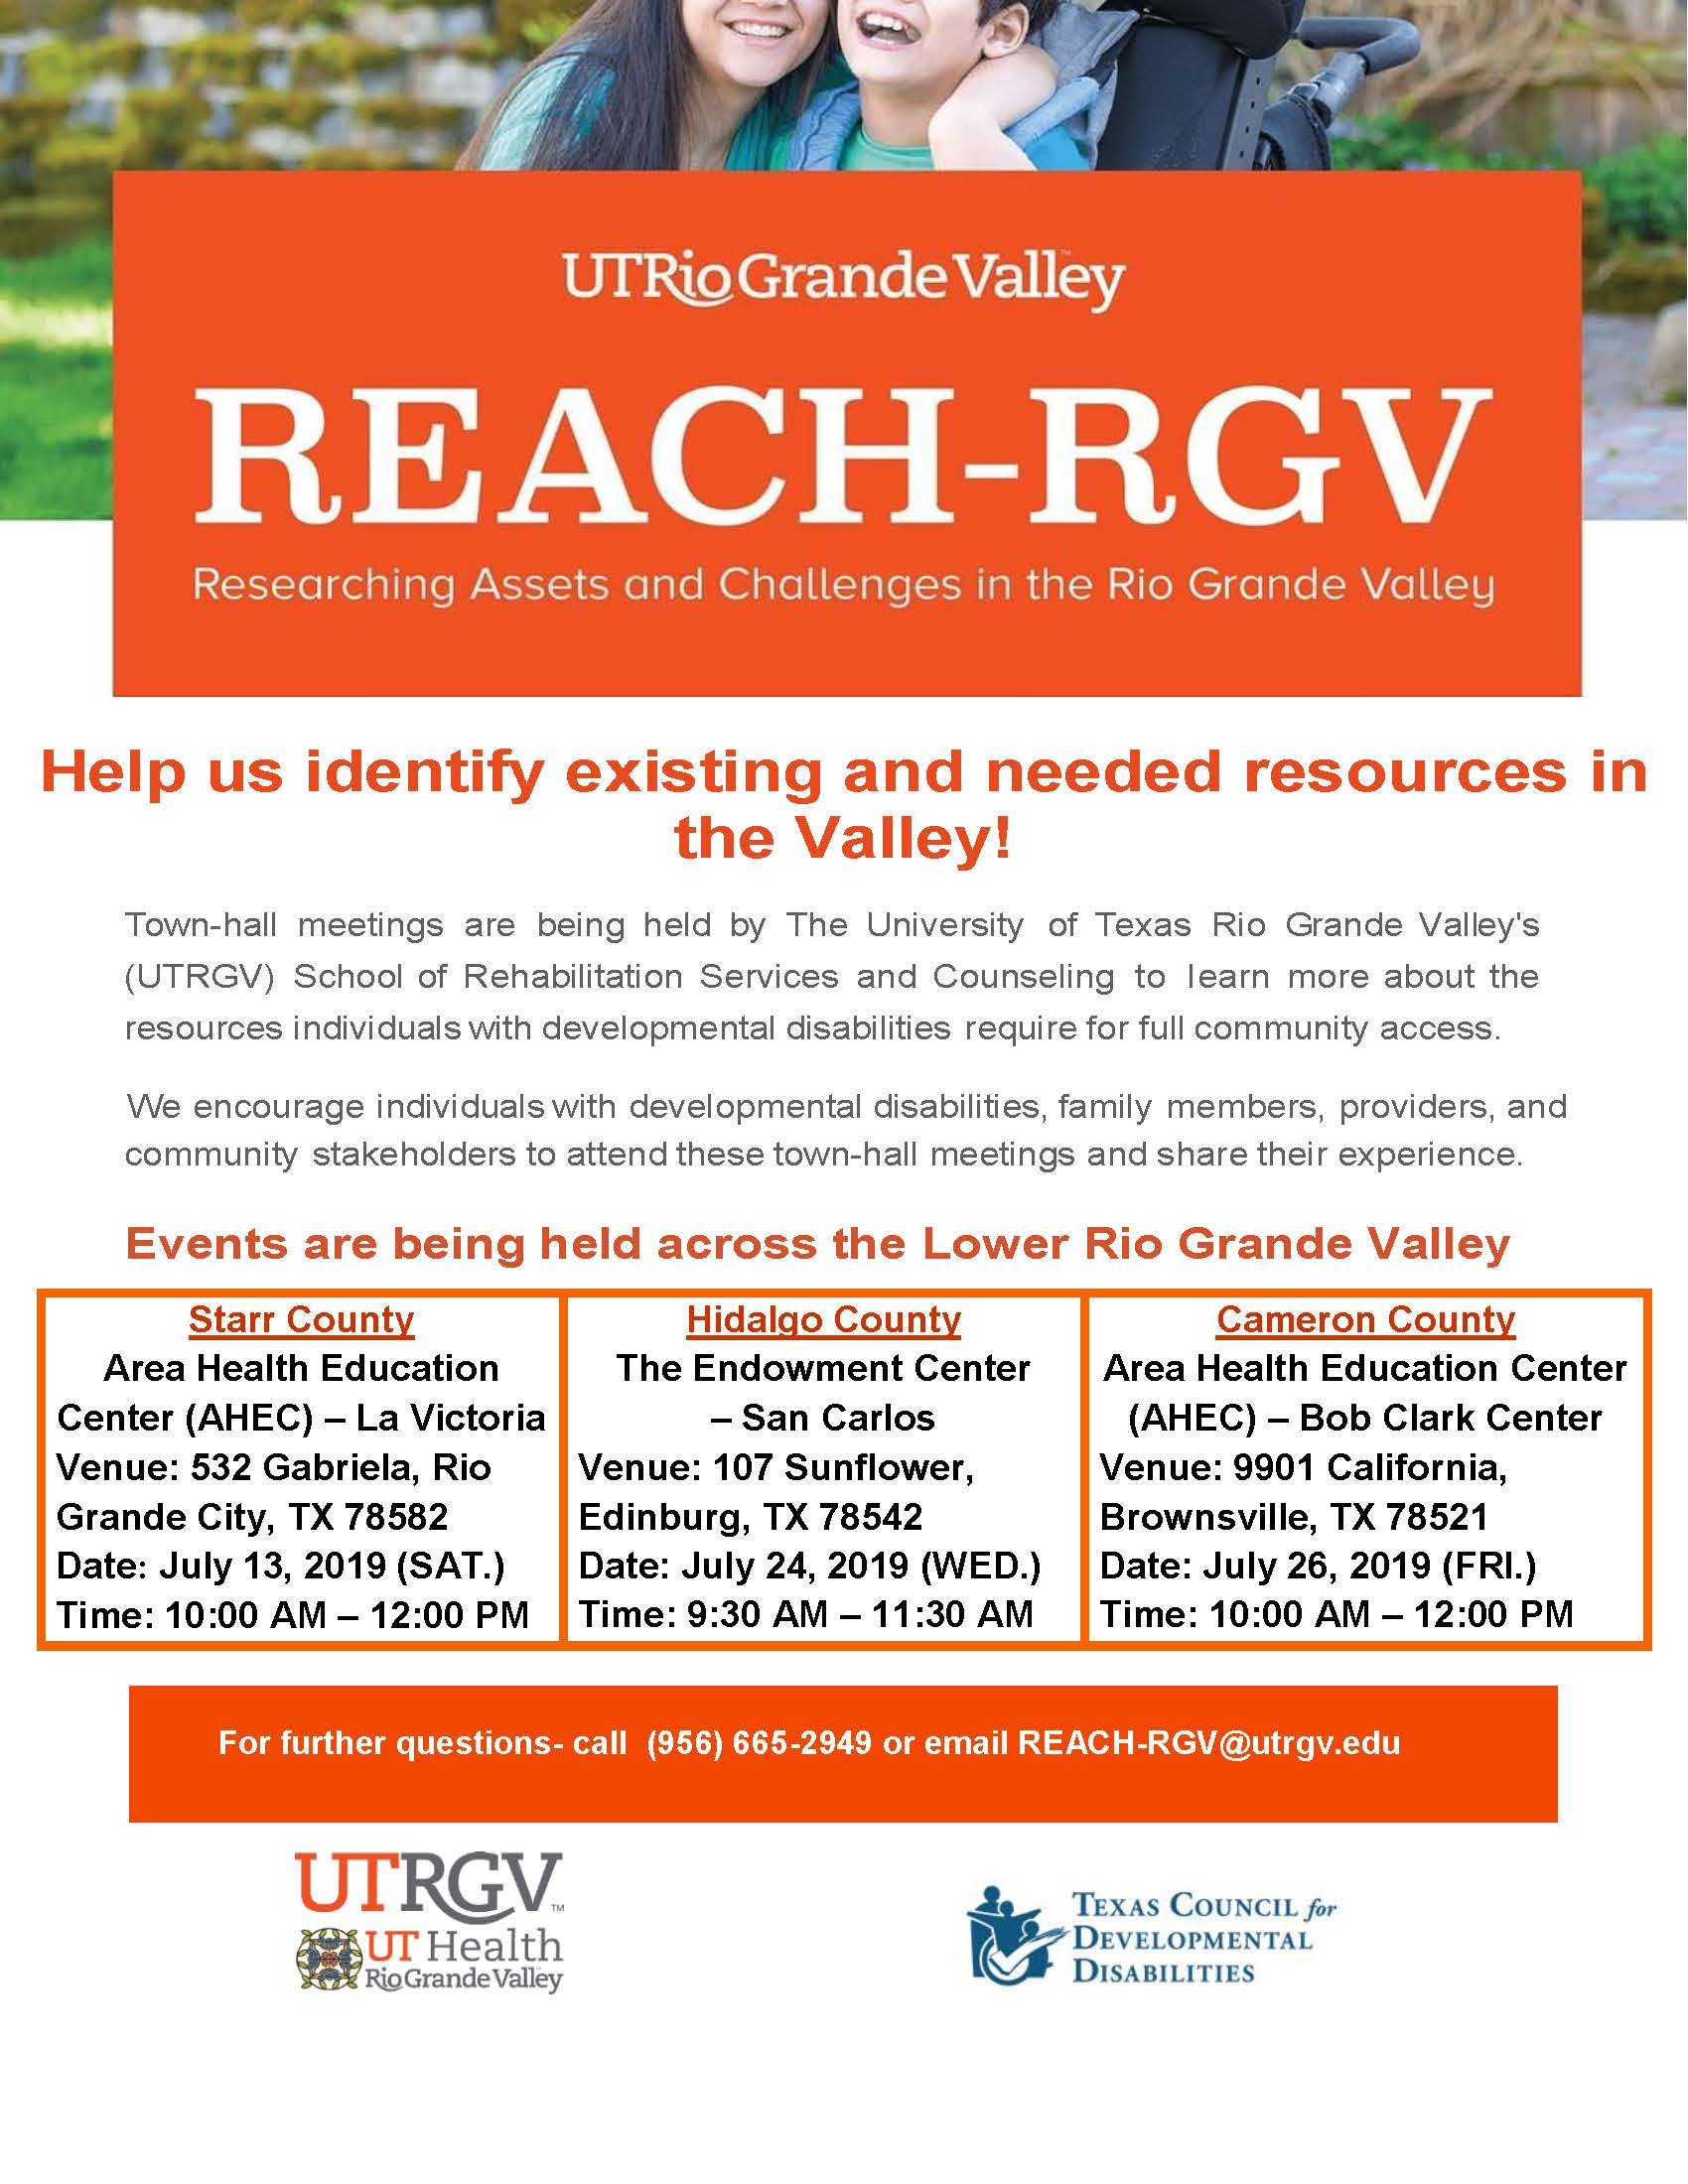 REACH RGV Flyer both english and spanish - July Event1_Page_1.jpg